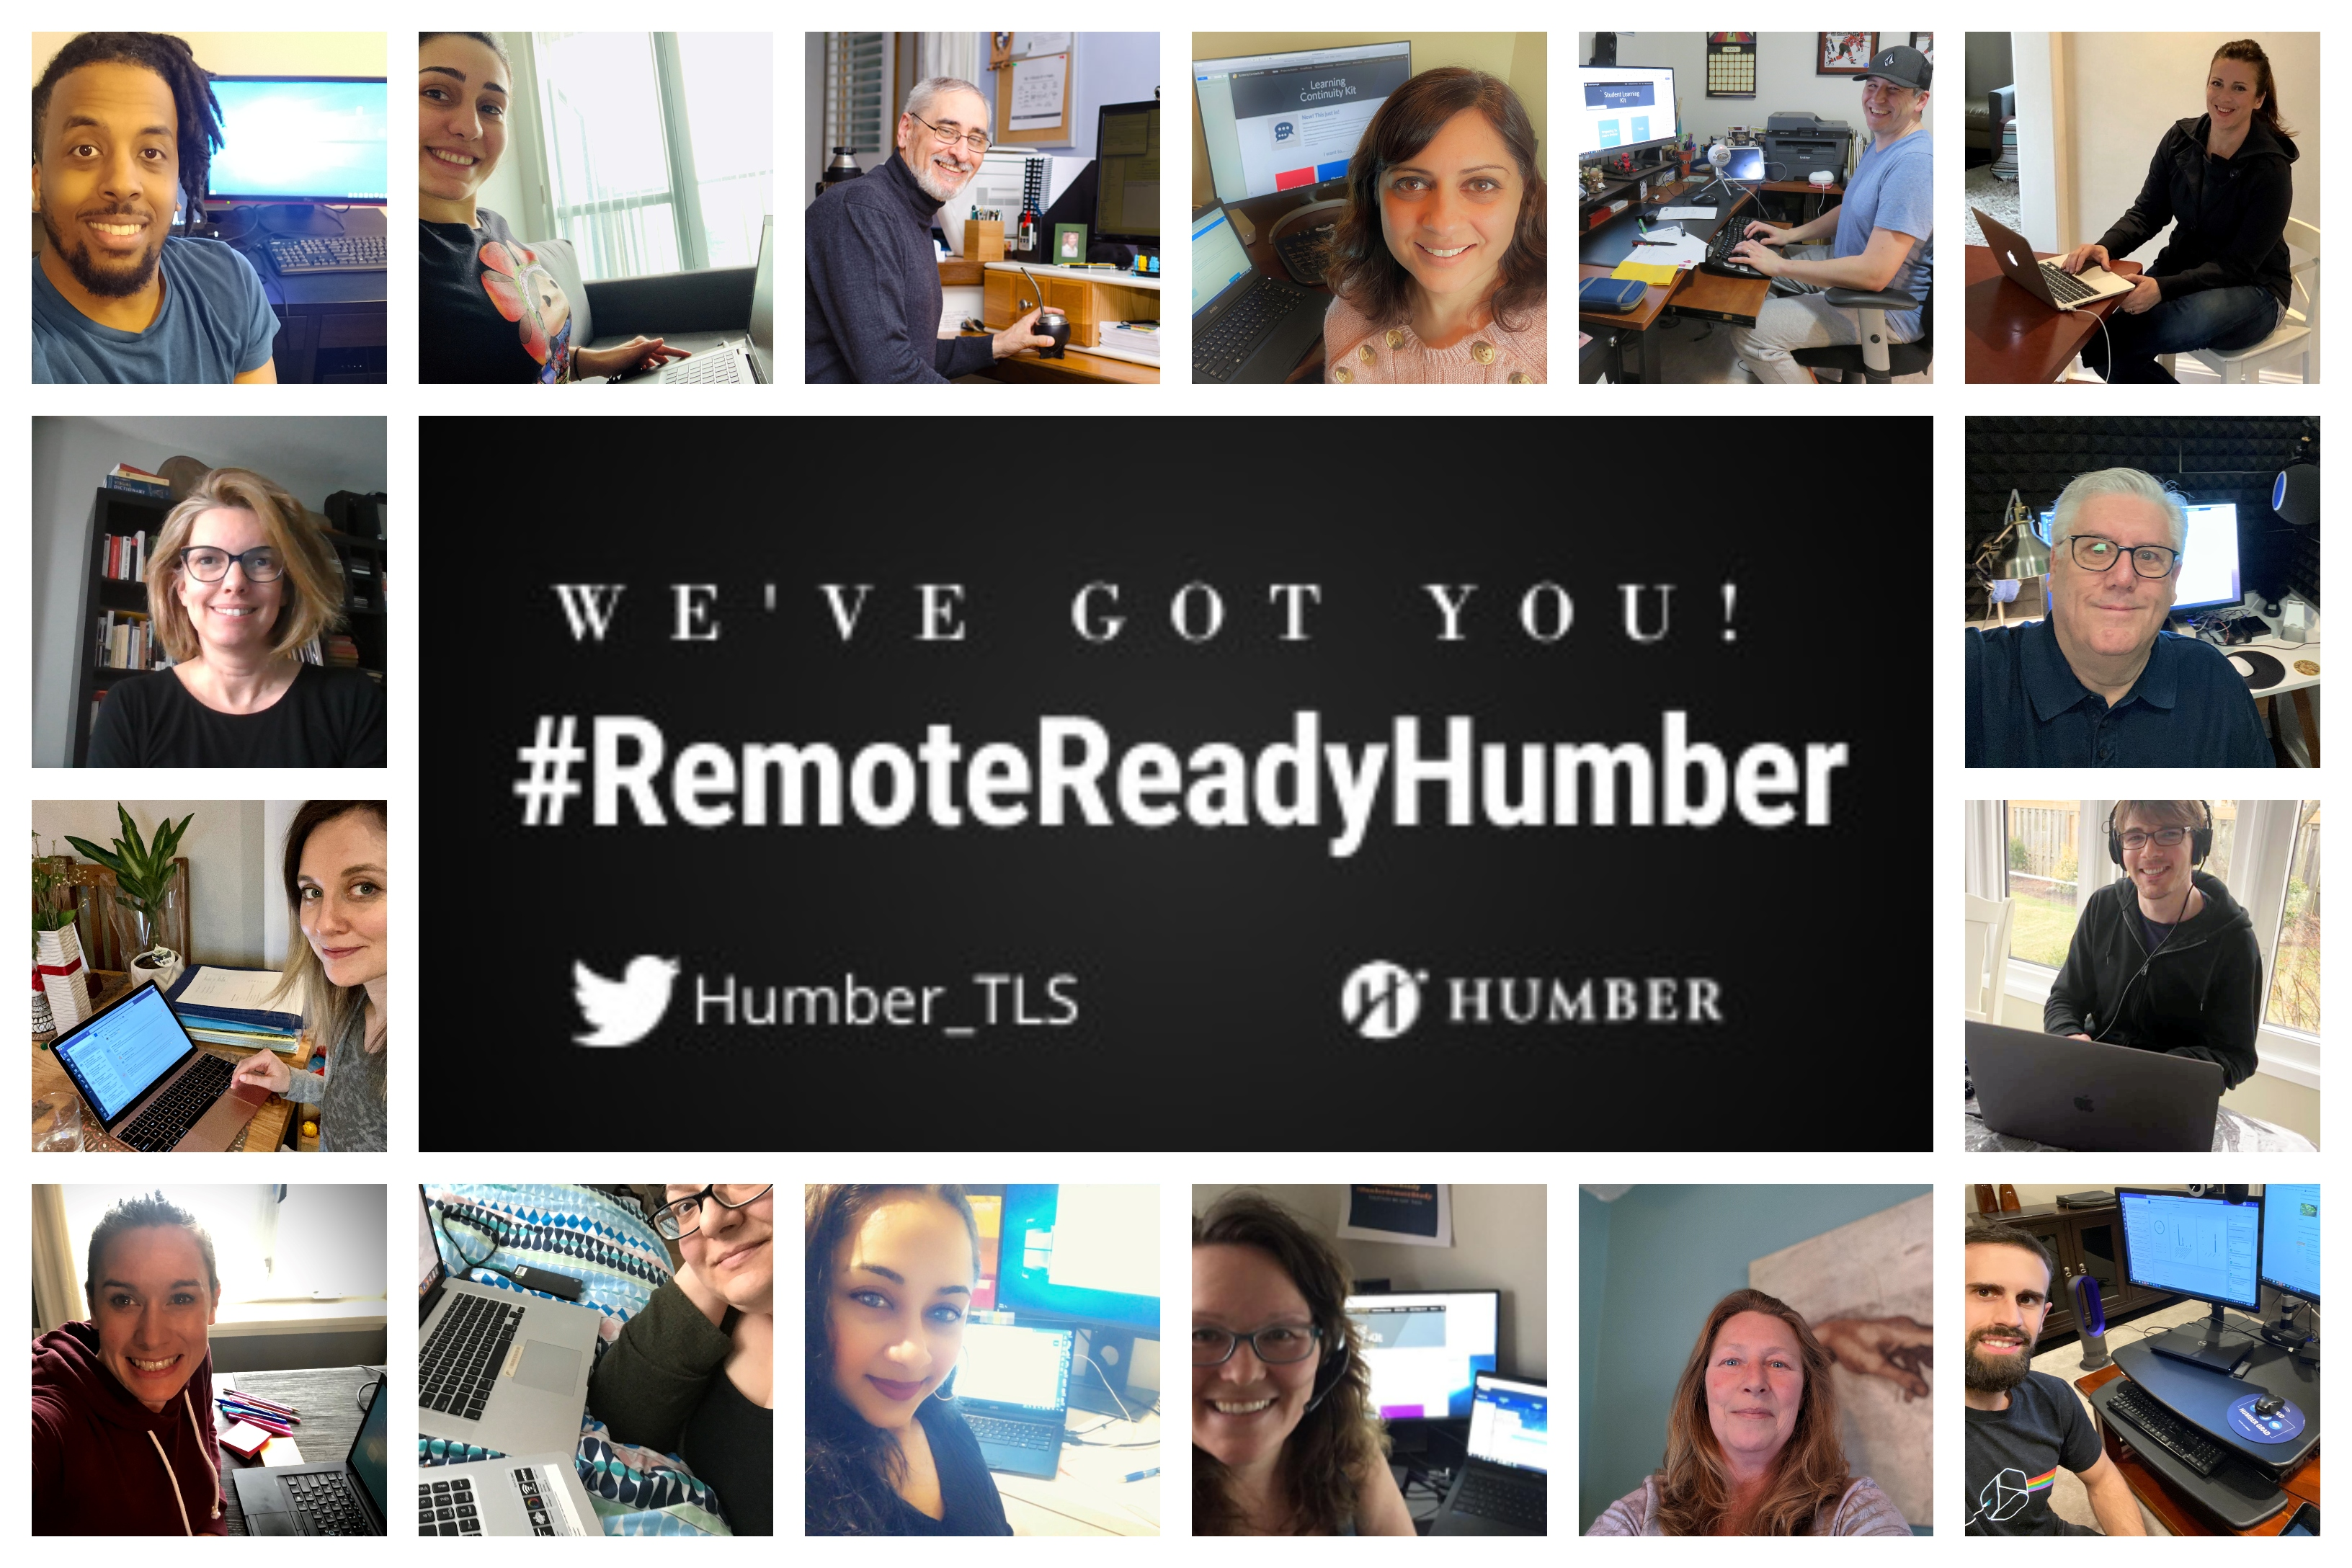 Remote Ready Humber. We've got you!